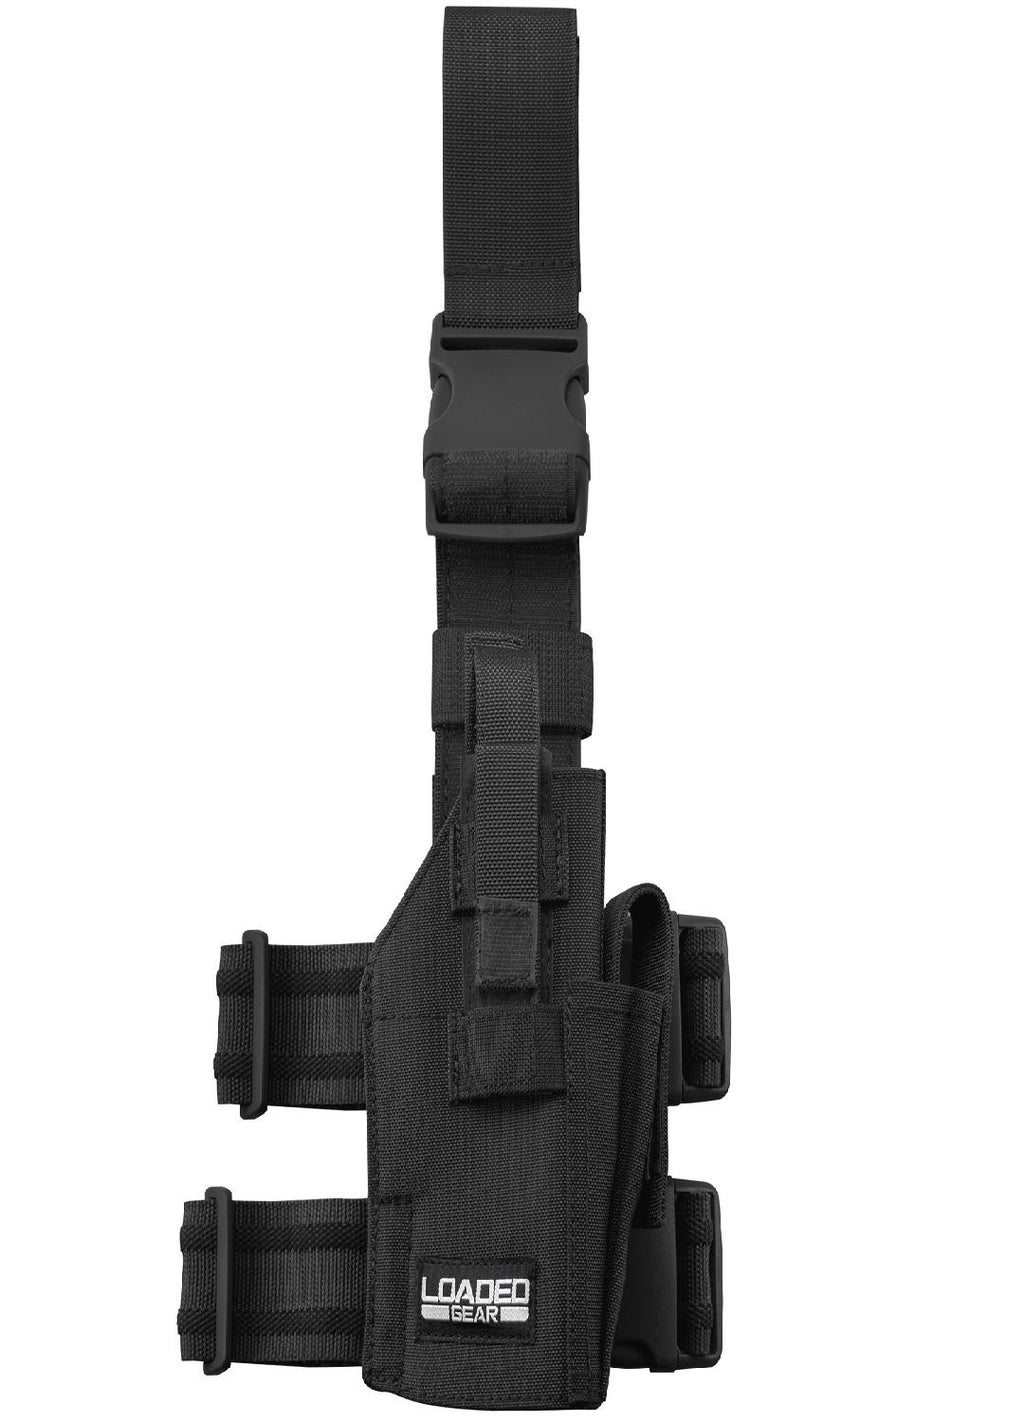 Barska Loaded Gear CX-500 Drop Leg Handgun Holder-Black